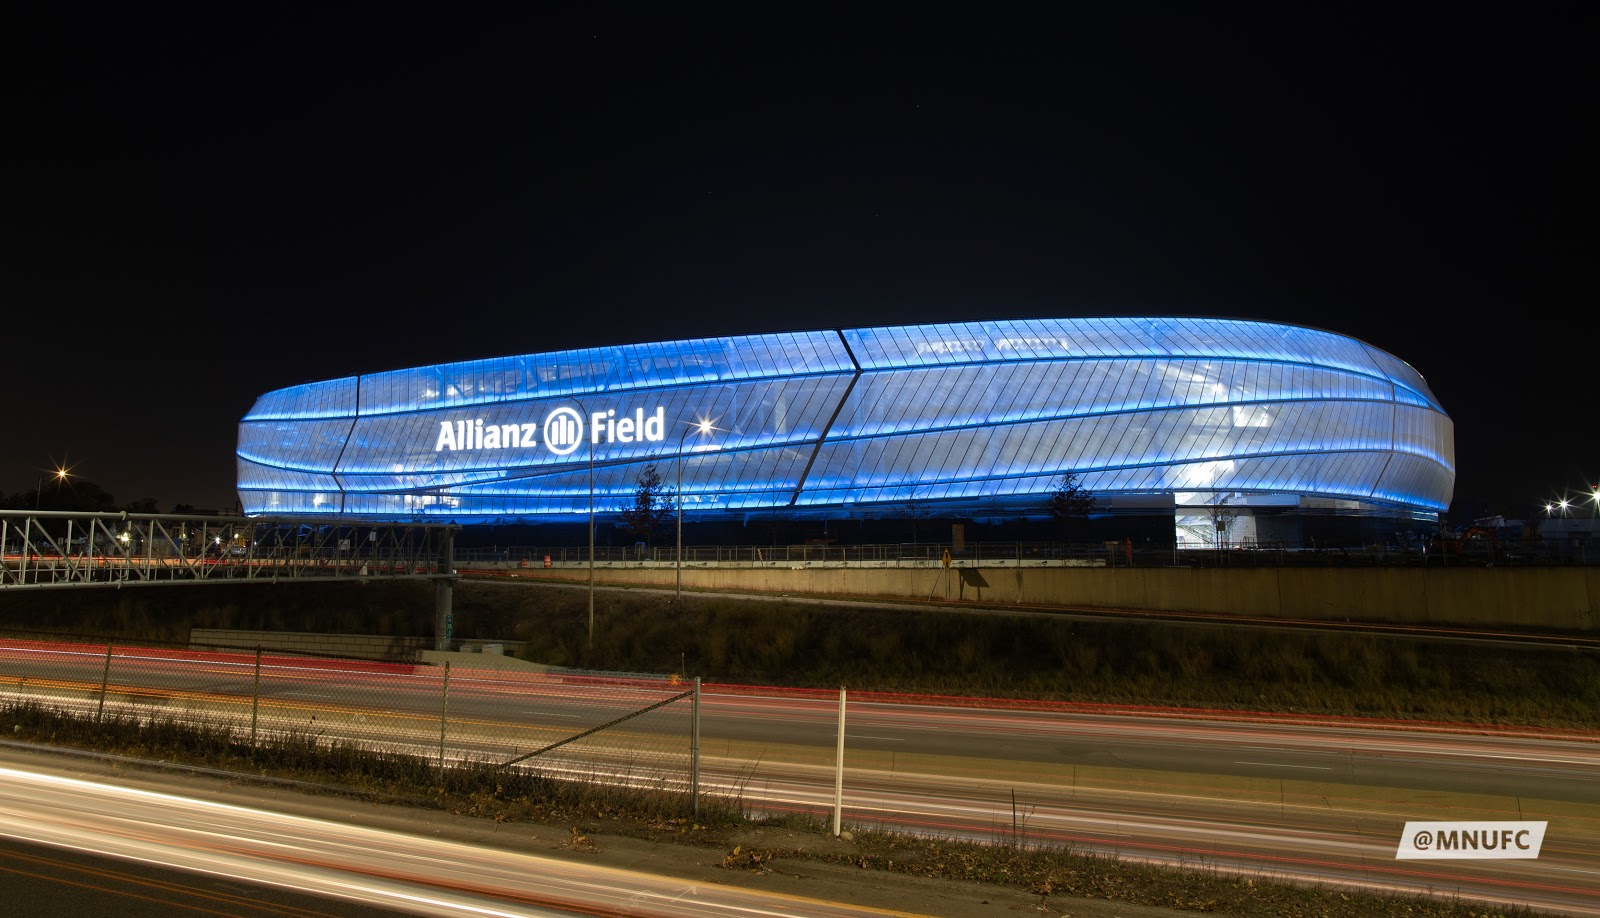 Allianz Field skin